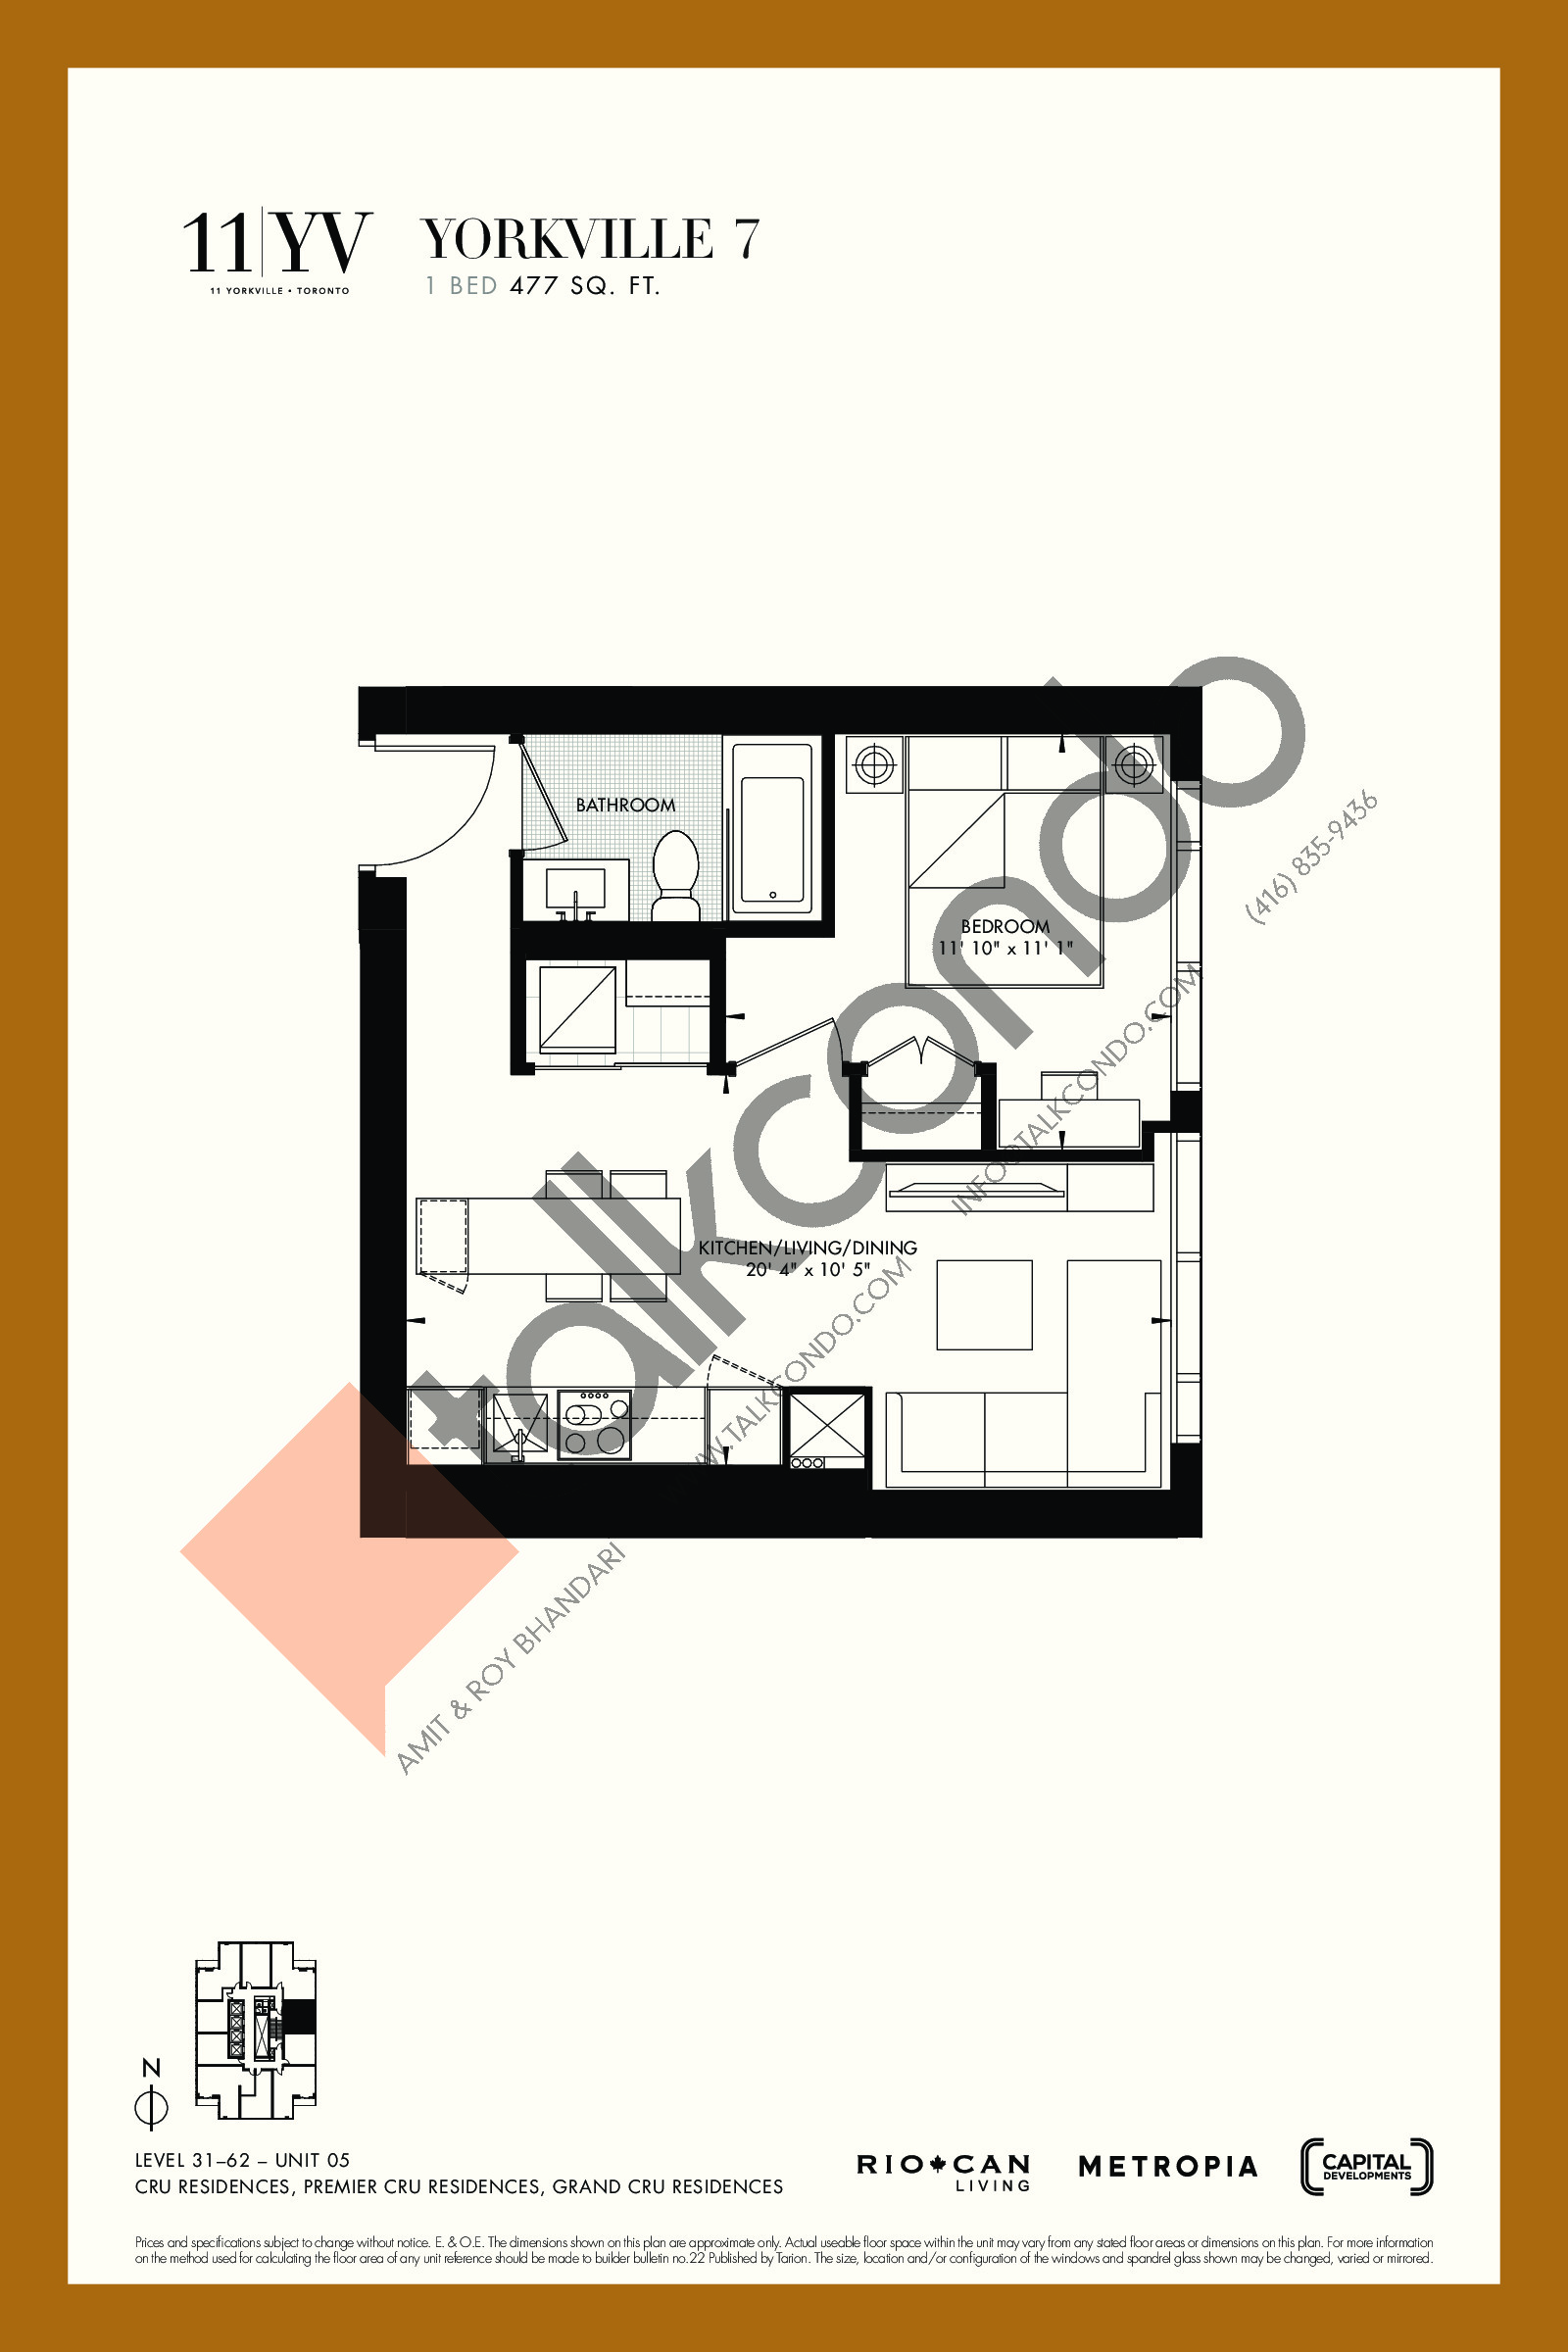 Yorkville 7 Floor Plan at 11YV Condos - 477 sq.ft